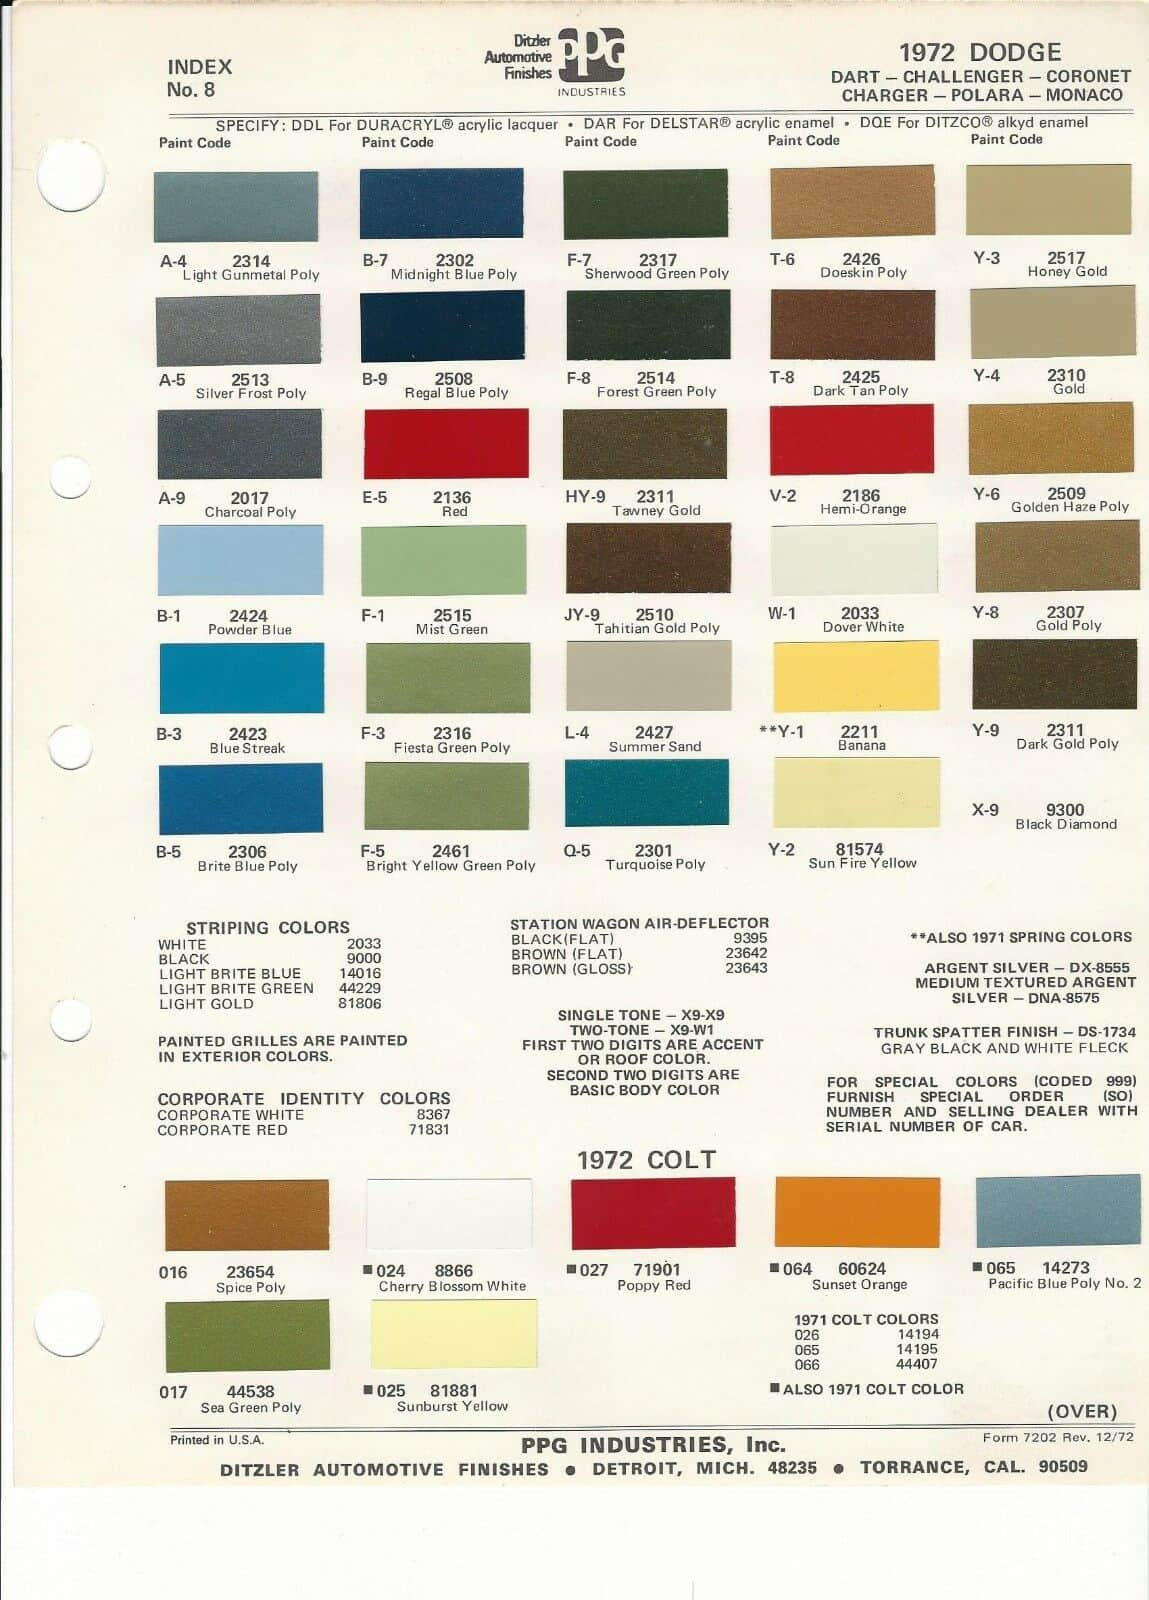 1972 Dodge Charger Car Paint Colors Urechem Urekem